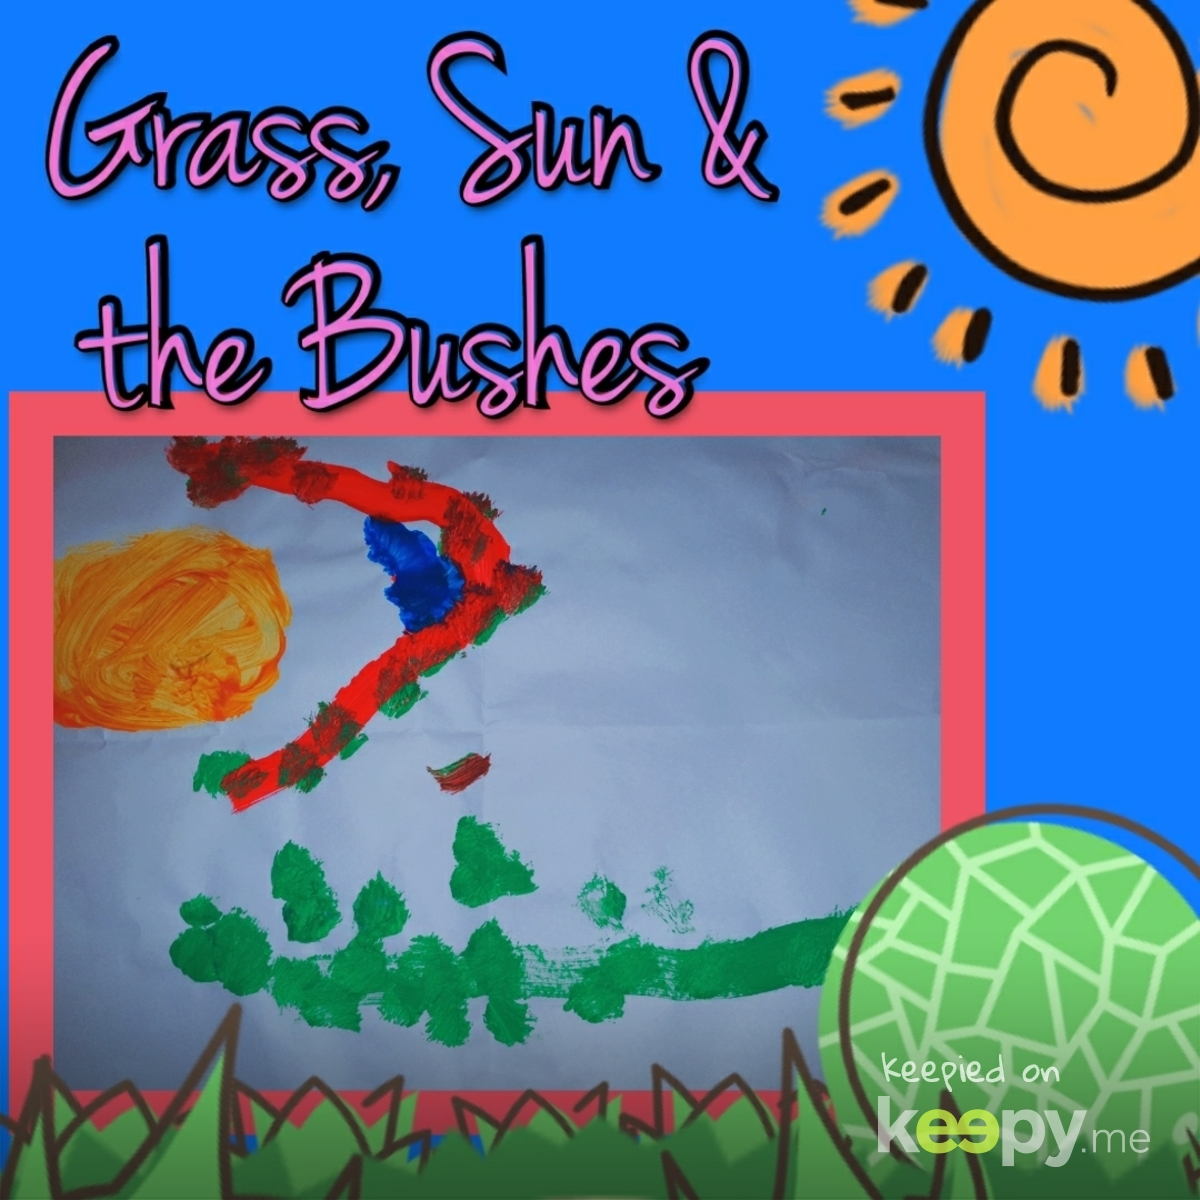 Charli's painting of Grass, Sun & Bushes  » Keepy.me